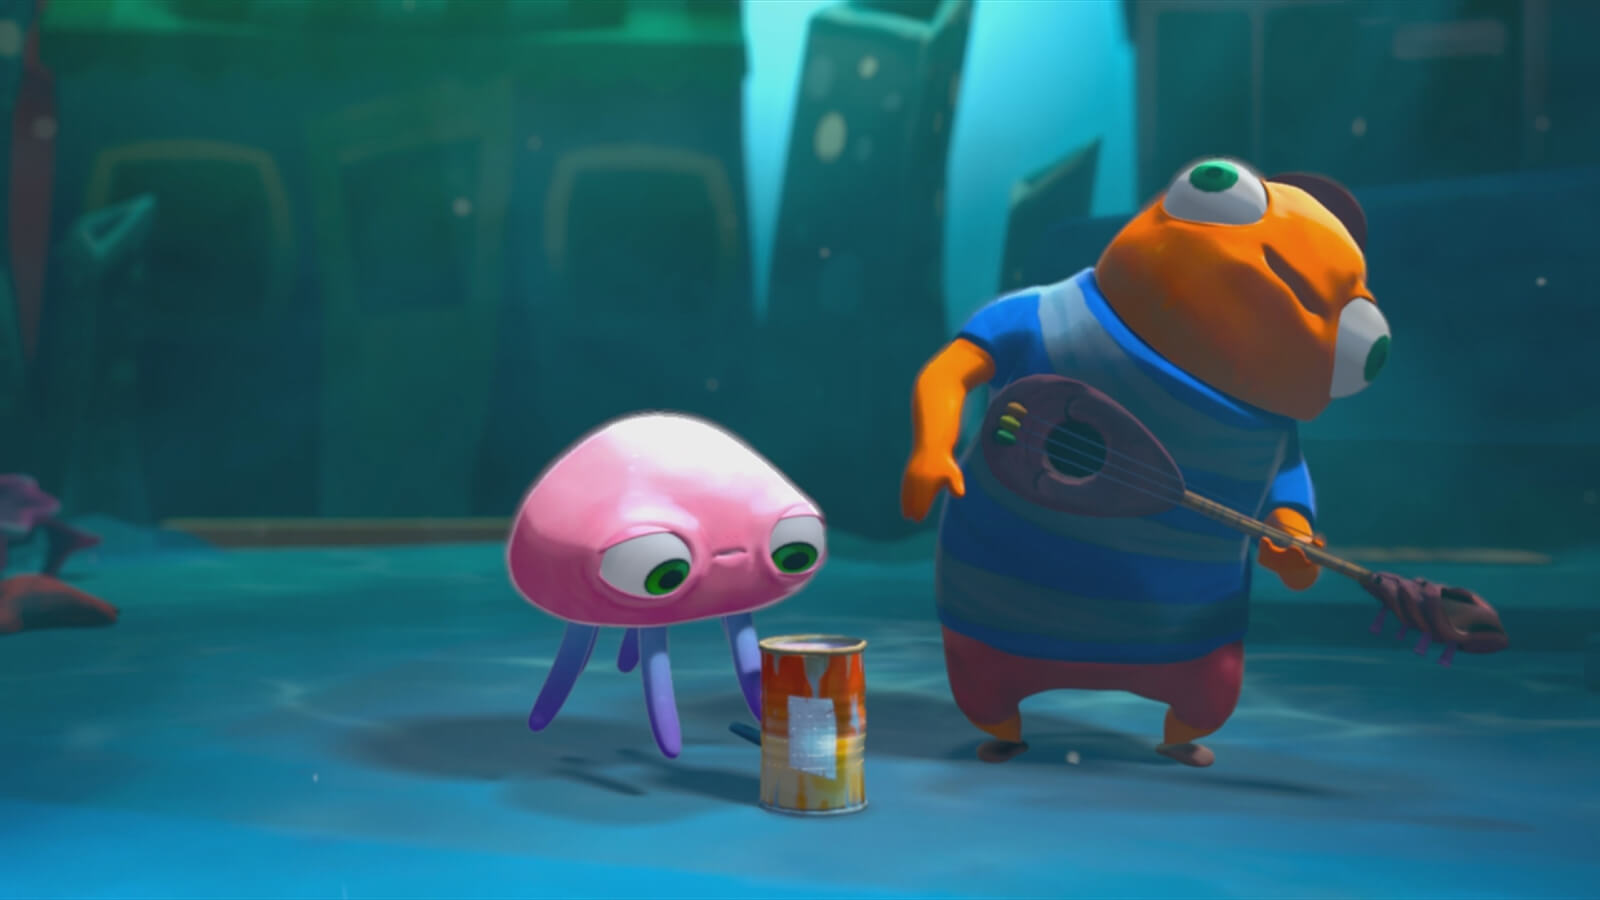 A small pink jellyfish looks at an open tin can in front of an orange fish holding a guitar-like instrument